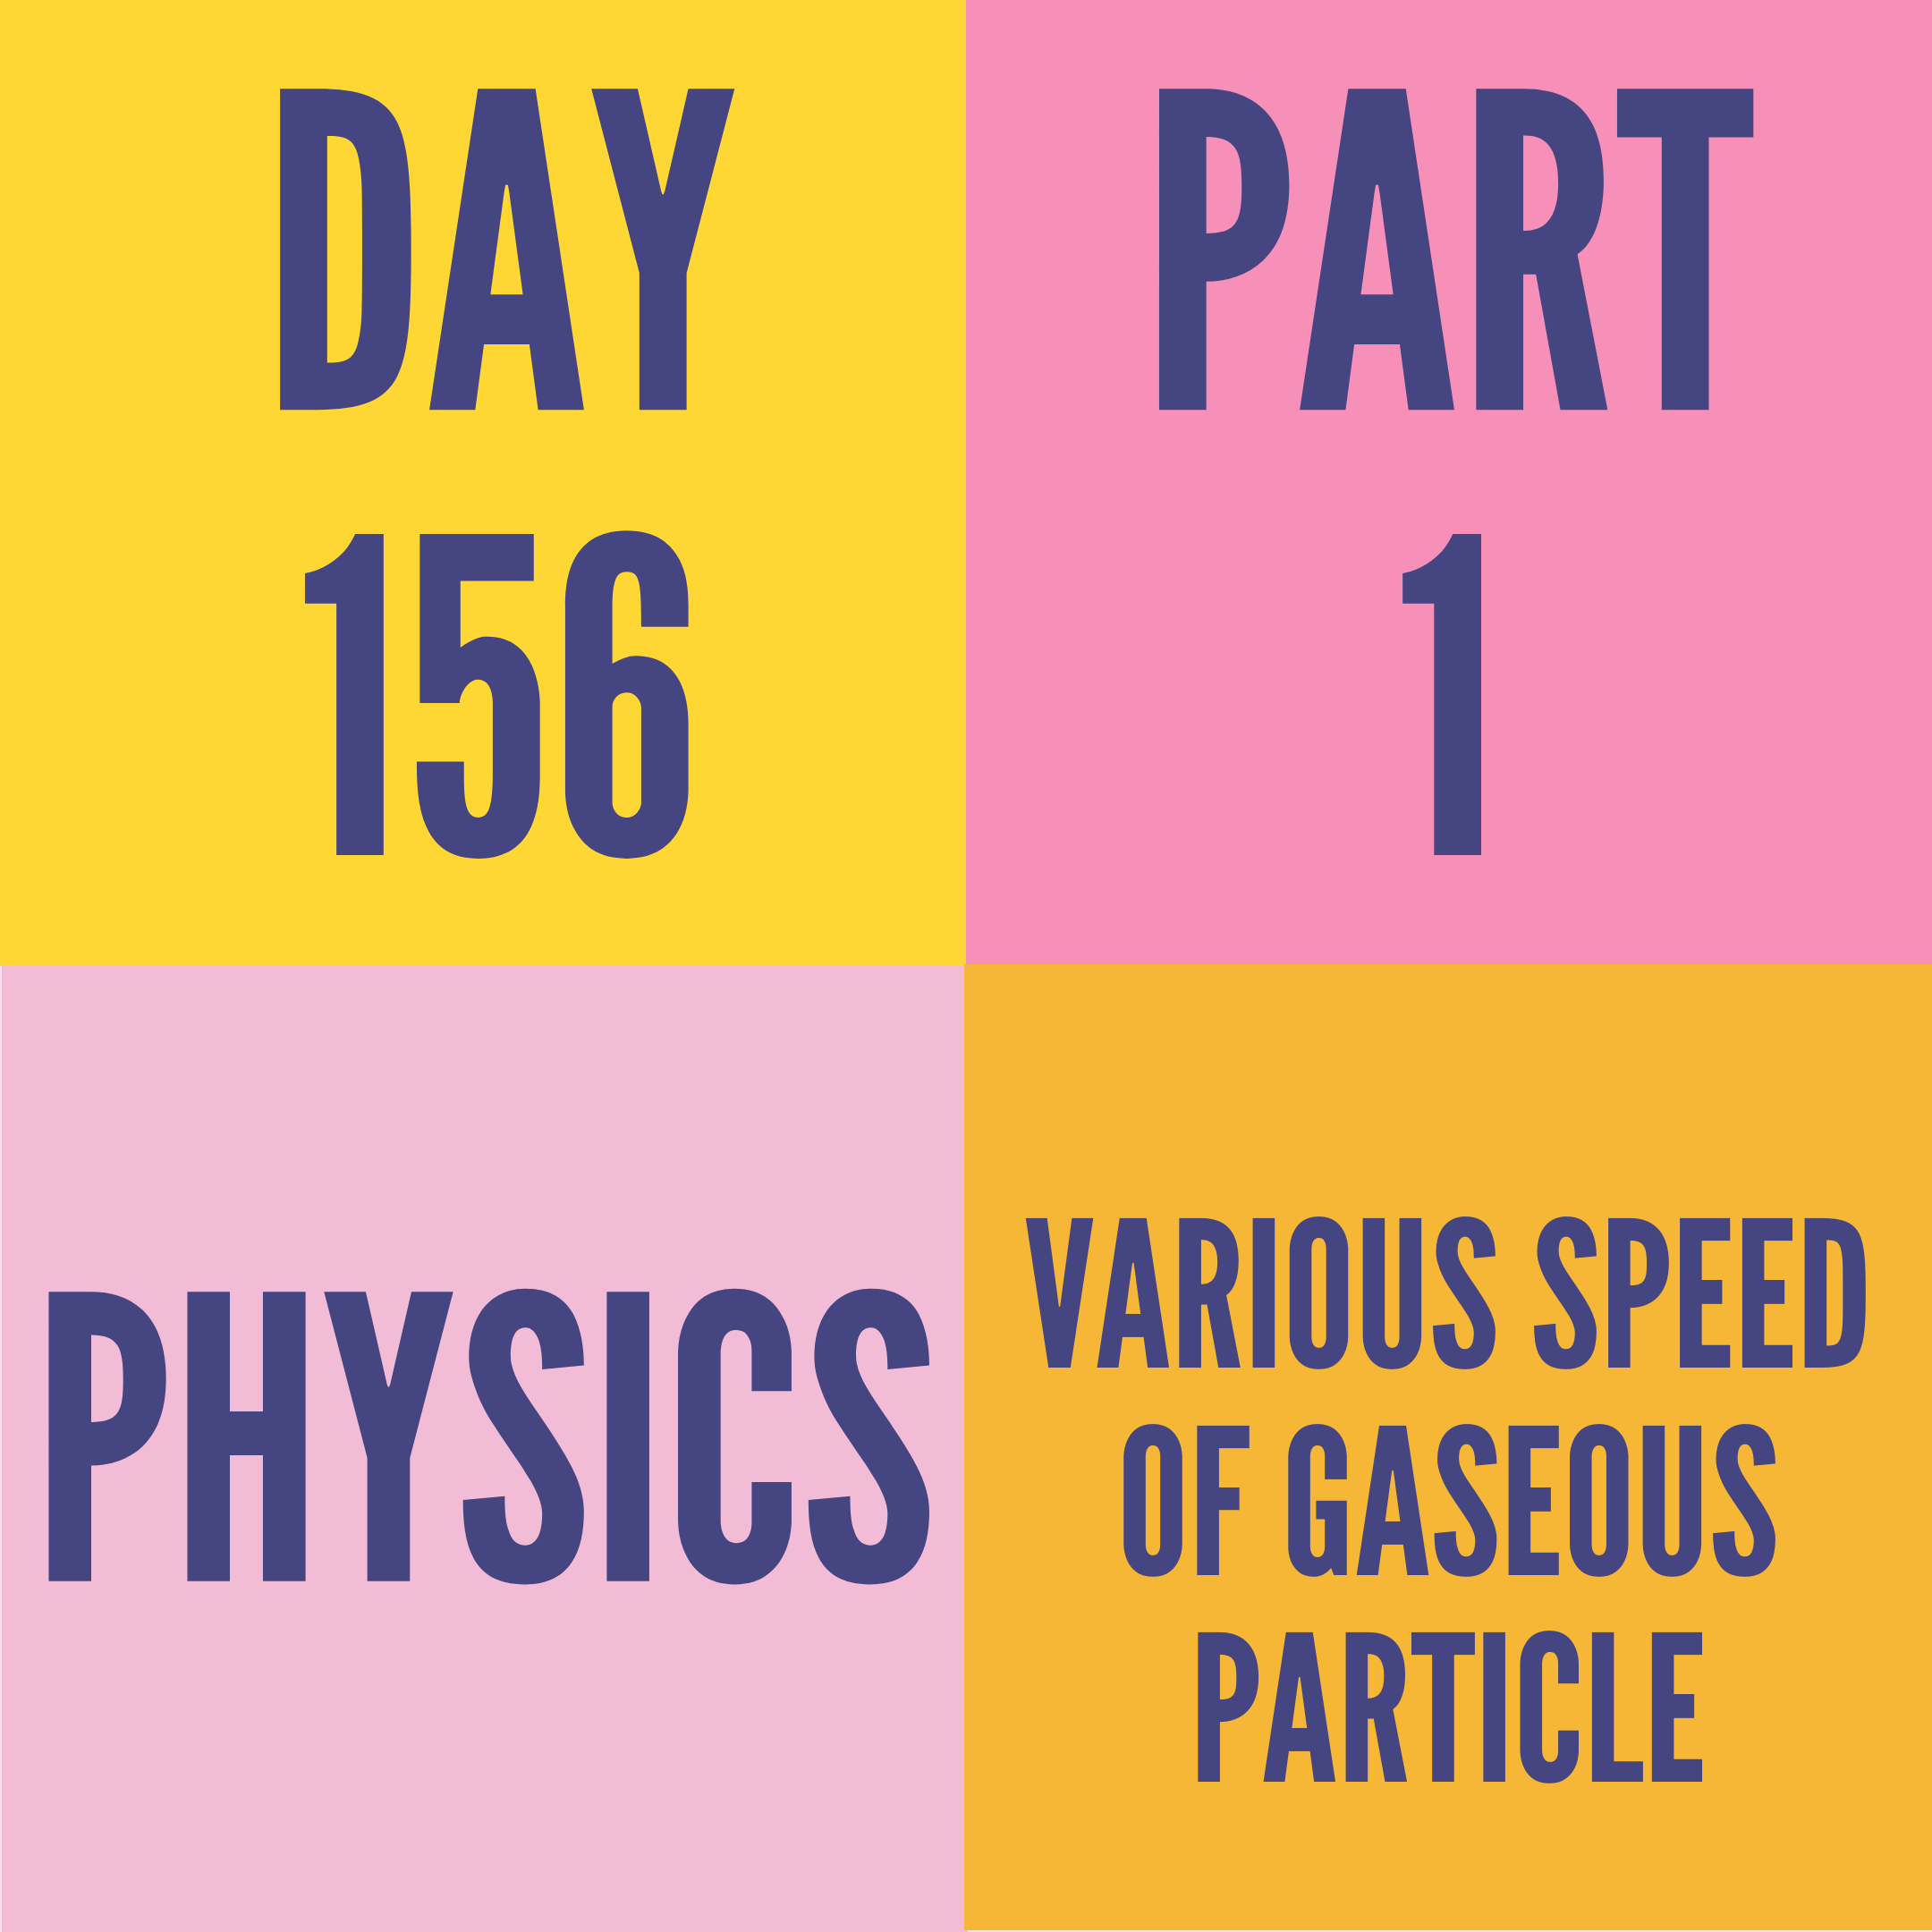 DAY-156 PART-1 VARIOUS SPEED OF GASEOUS PARTICLE